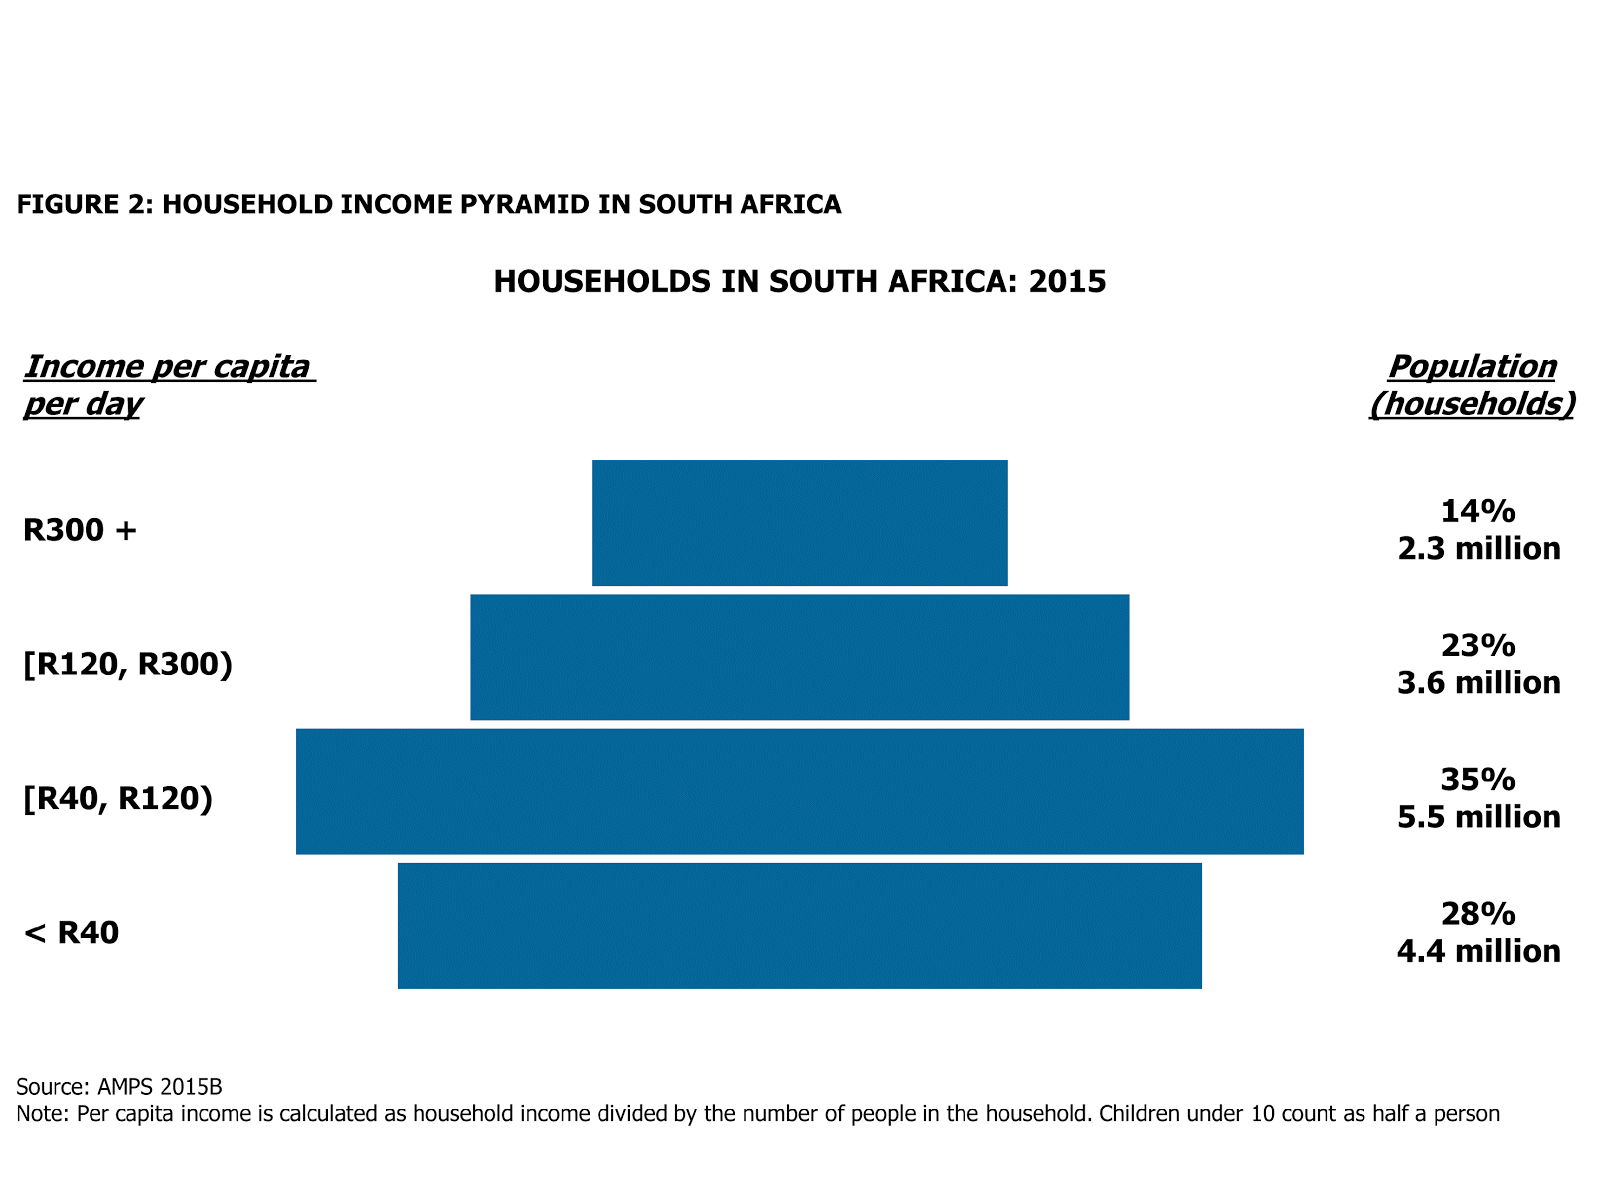 Per capita income in South Africa